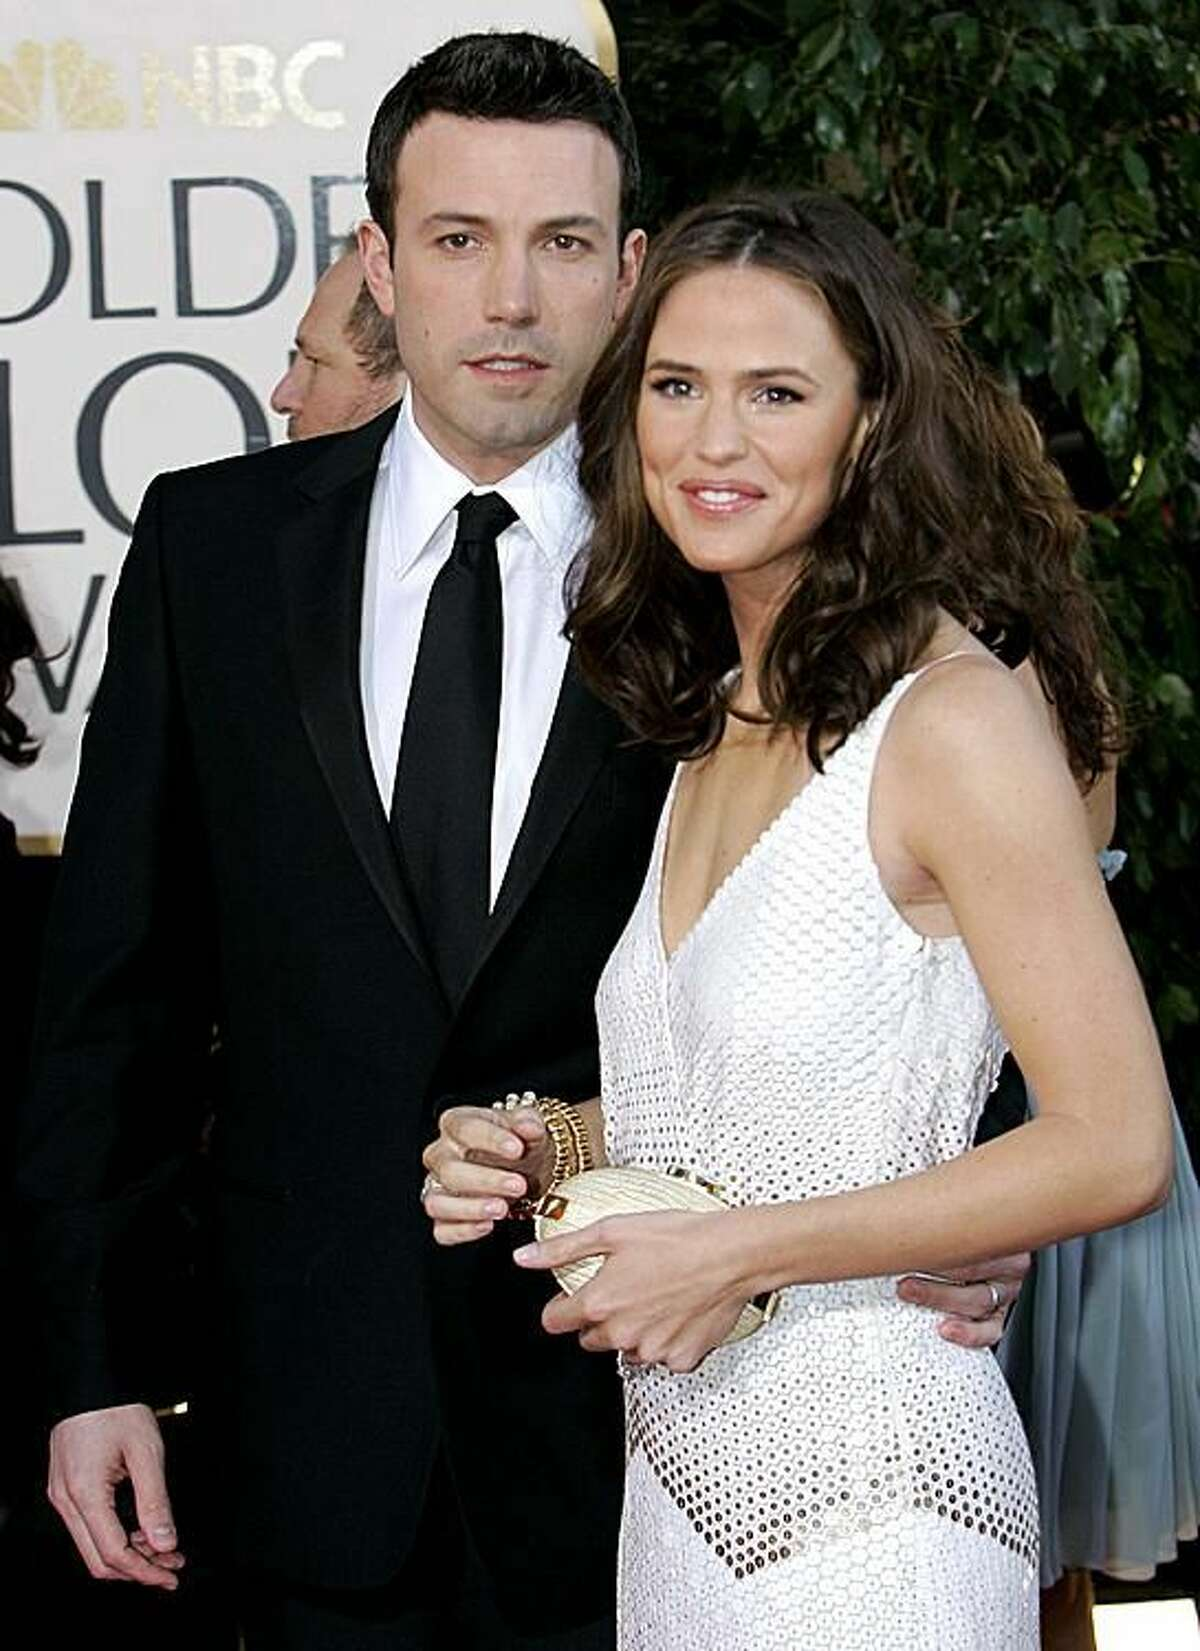 In this Jan. 15, 2007, photo, Ben Affleck, left, and Jennifer Garner arrive for the 64th Annual Golden Globe Awards in Beverly Hills, Calif. (File photo by Mark J. Terrill